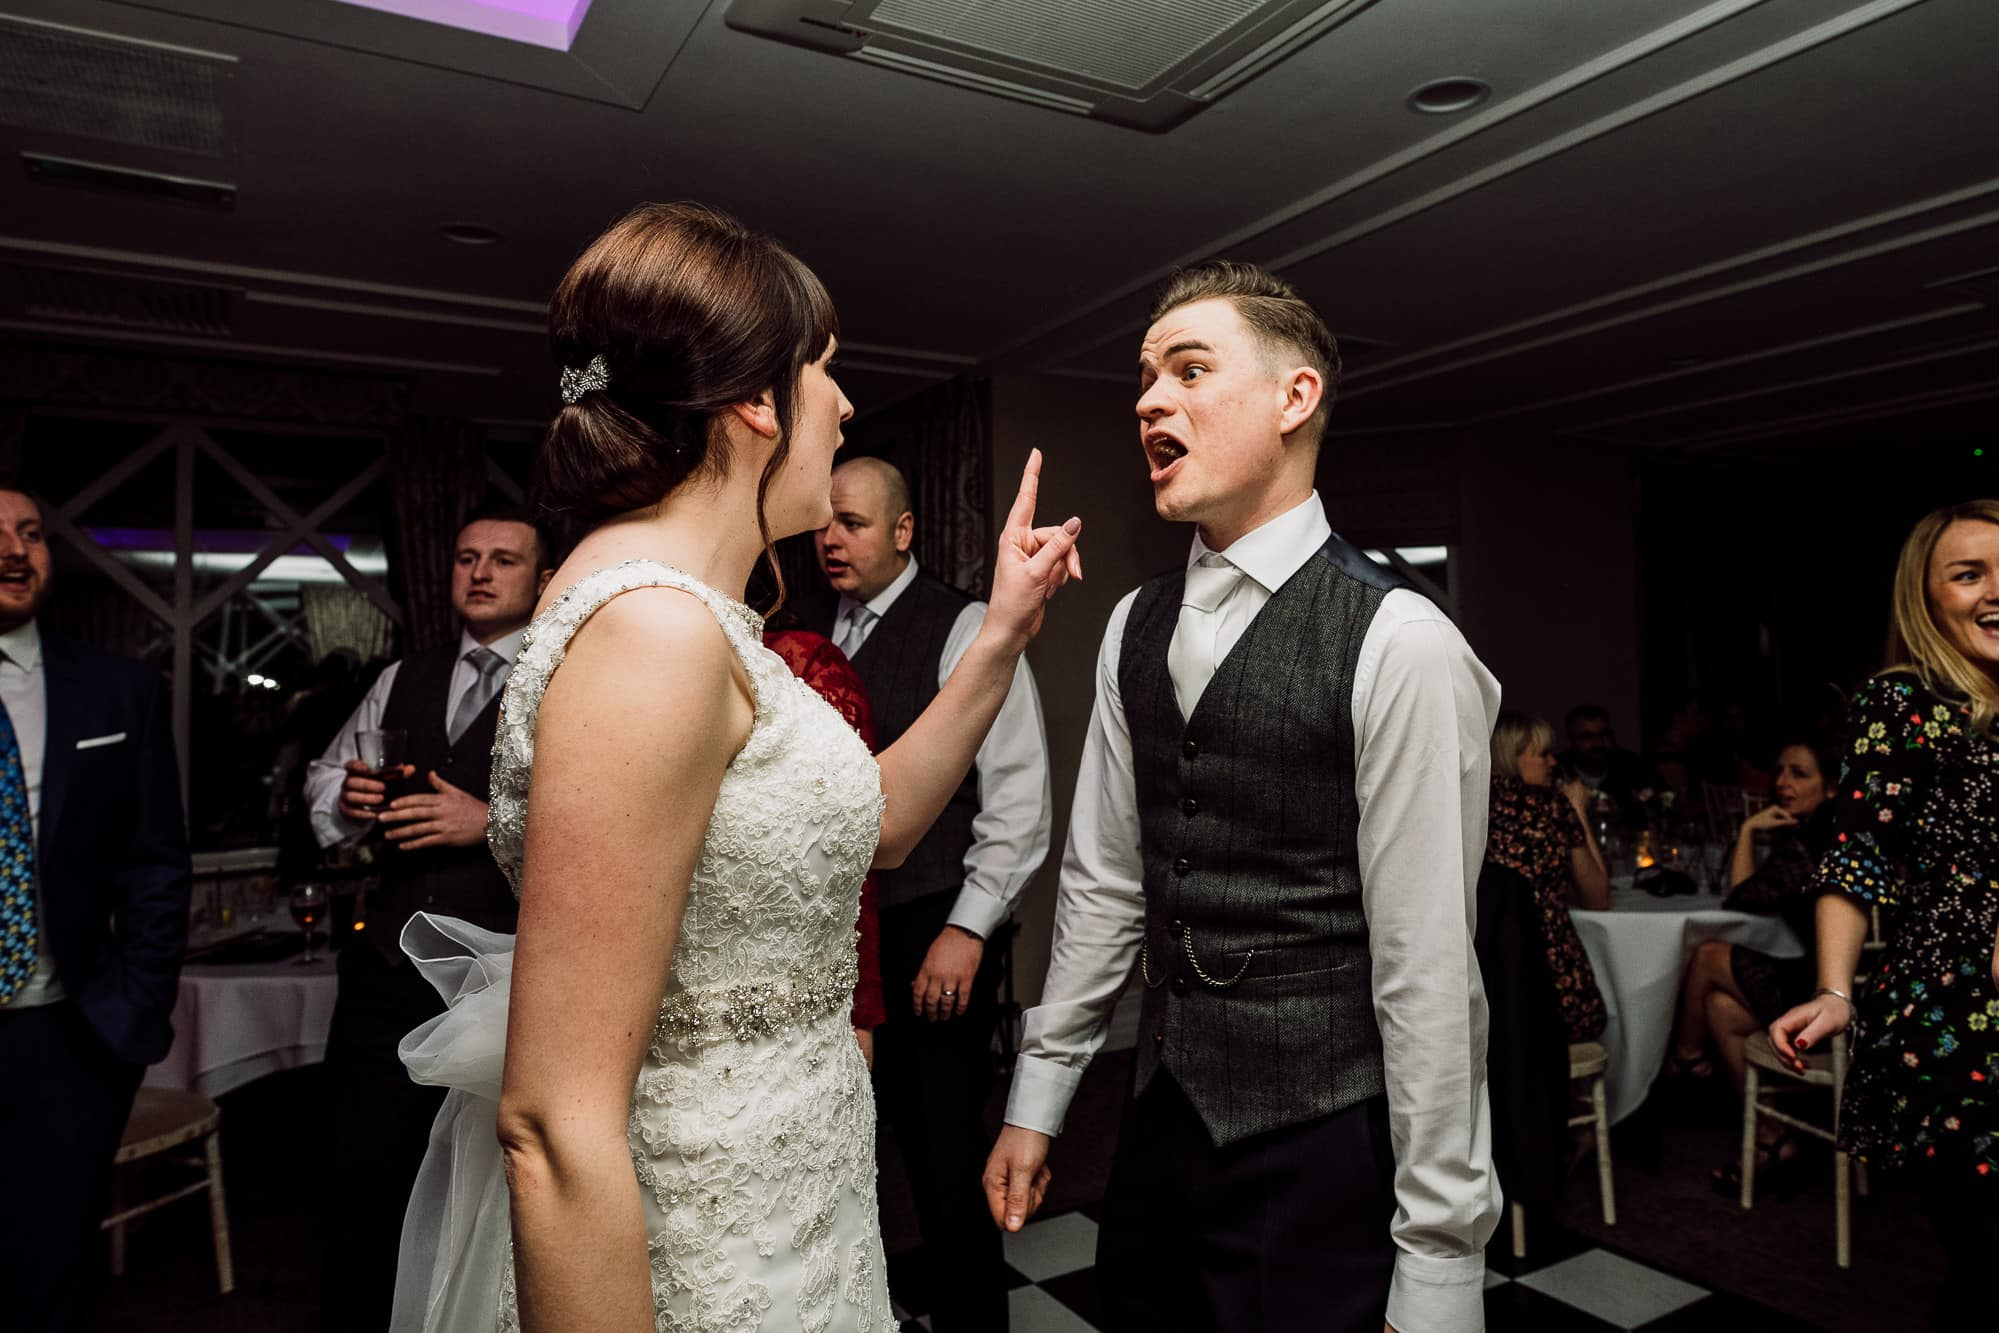 Bride tells off the groom